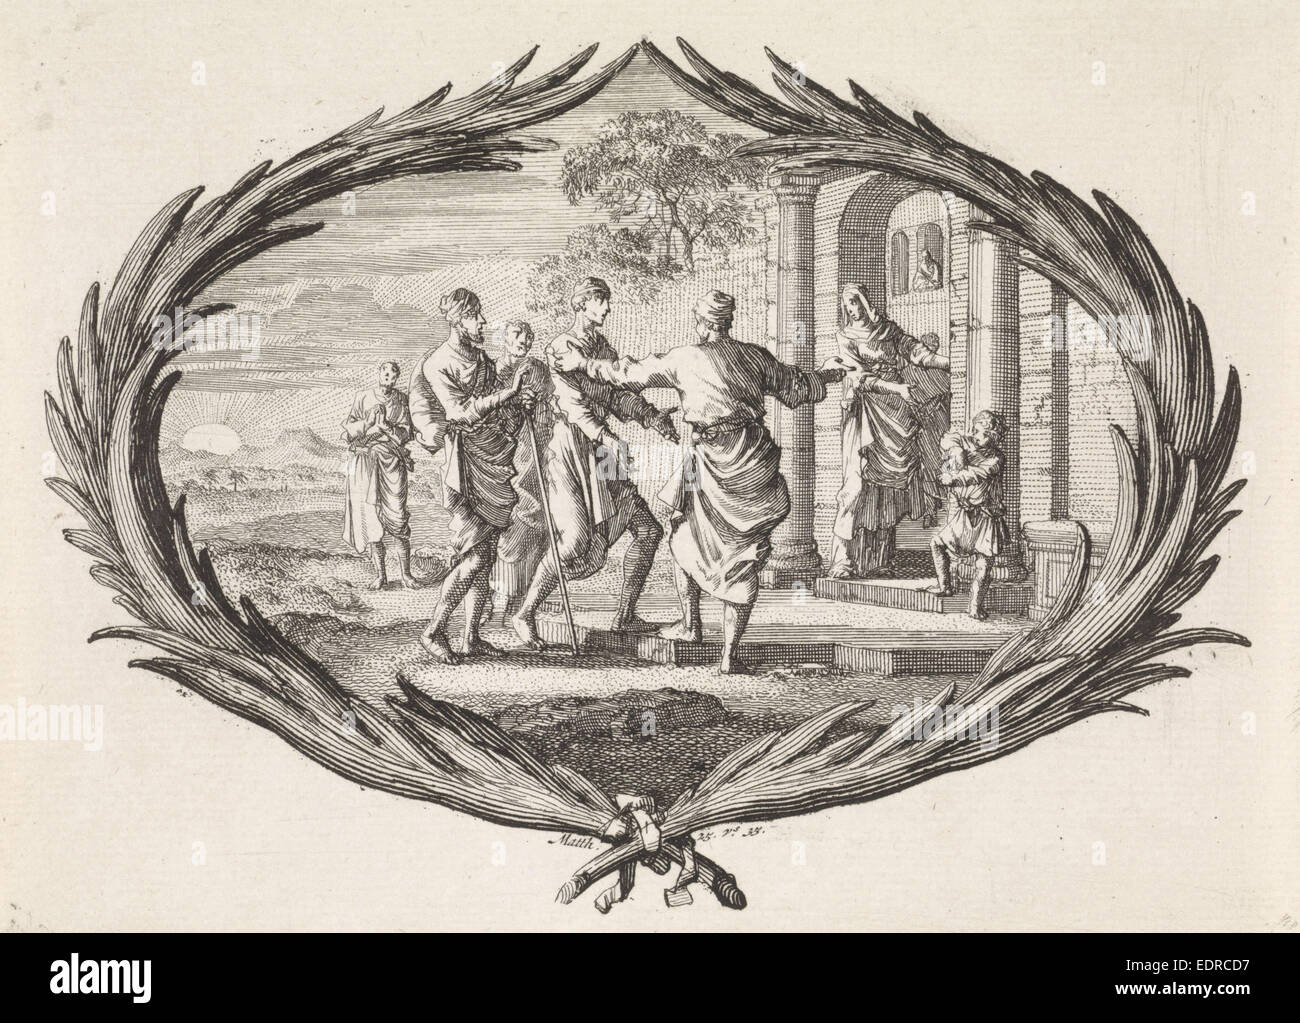 Aliens hostels, Jan Luyken, Dutch, 1649 - 1712, Pieter Mortier, 1700 - Stock Image